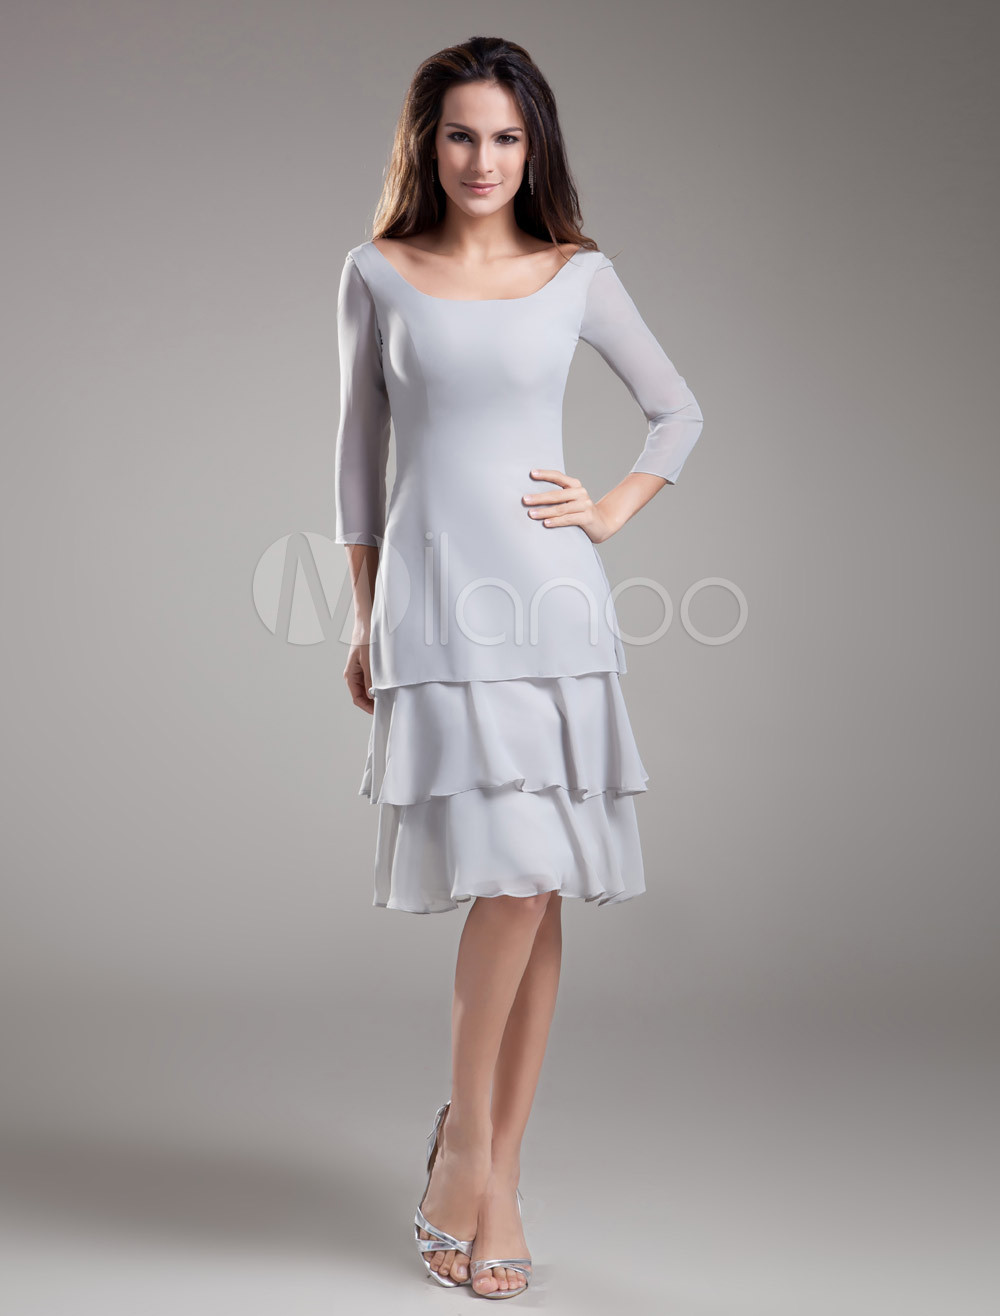 Elegant Sheath Silver Chiffon Tiered Off-The-Shoulder Knee-Length Bridesmaid Dress For Wedding